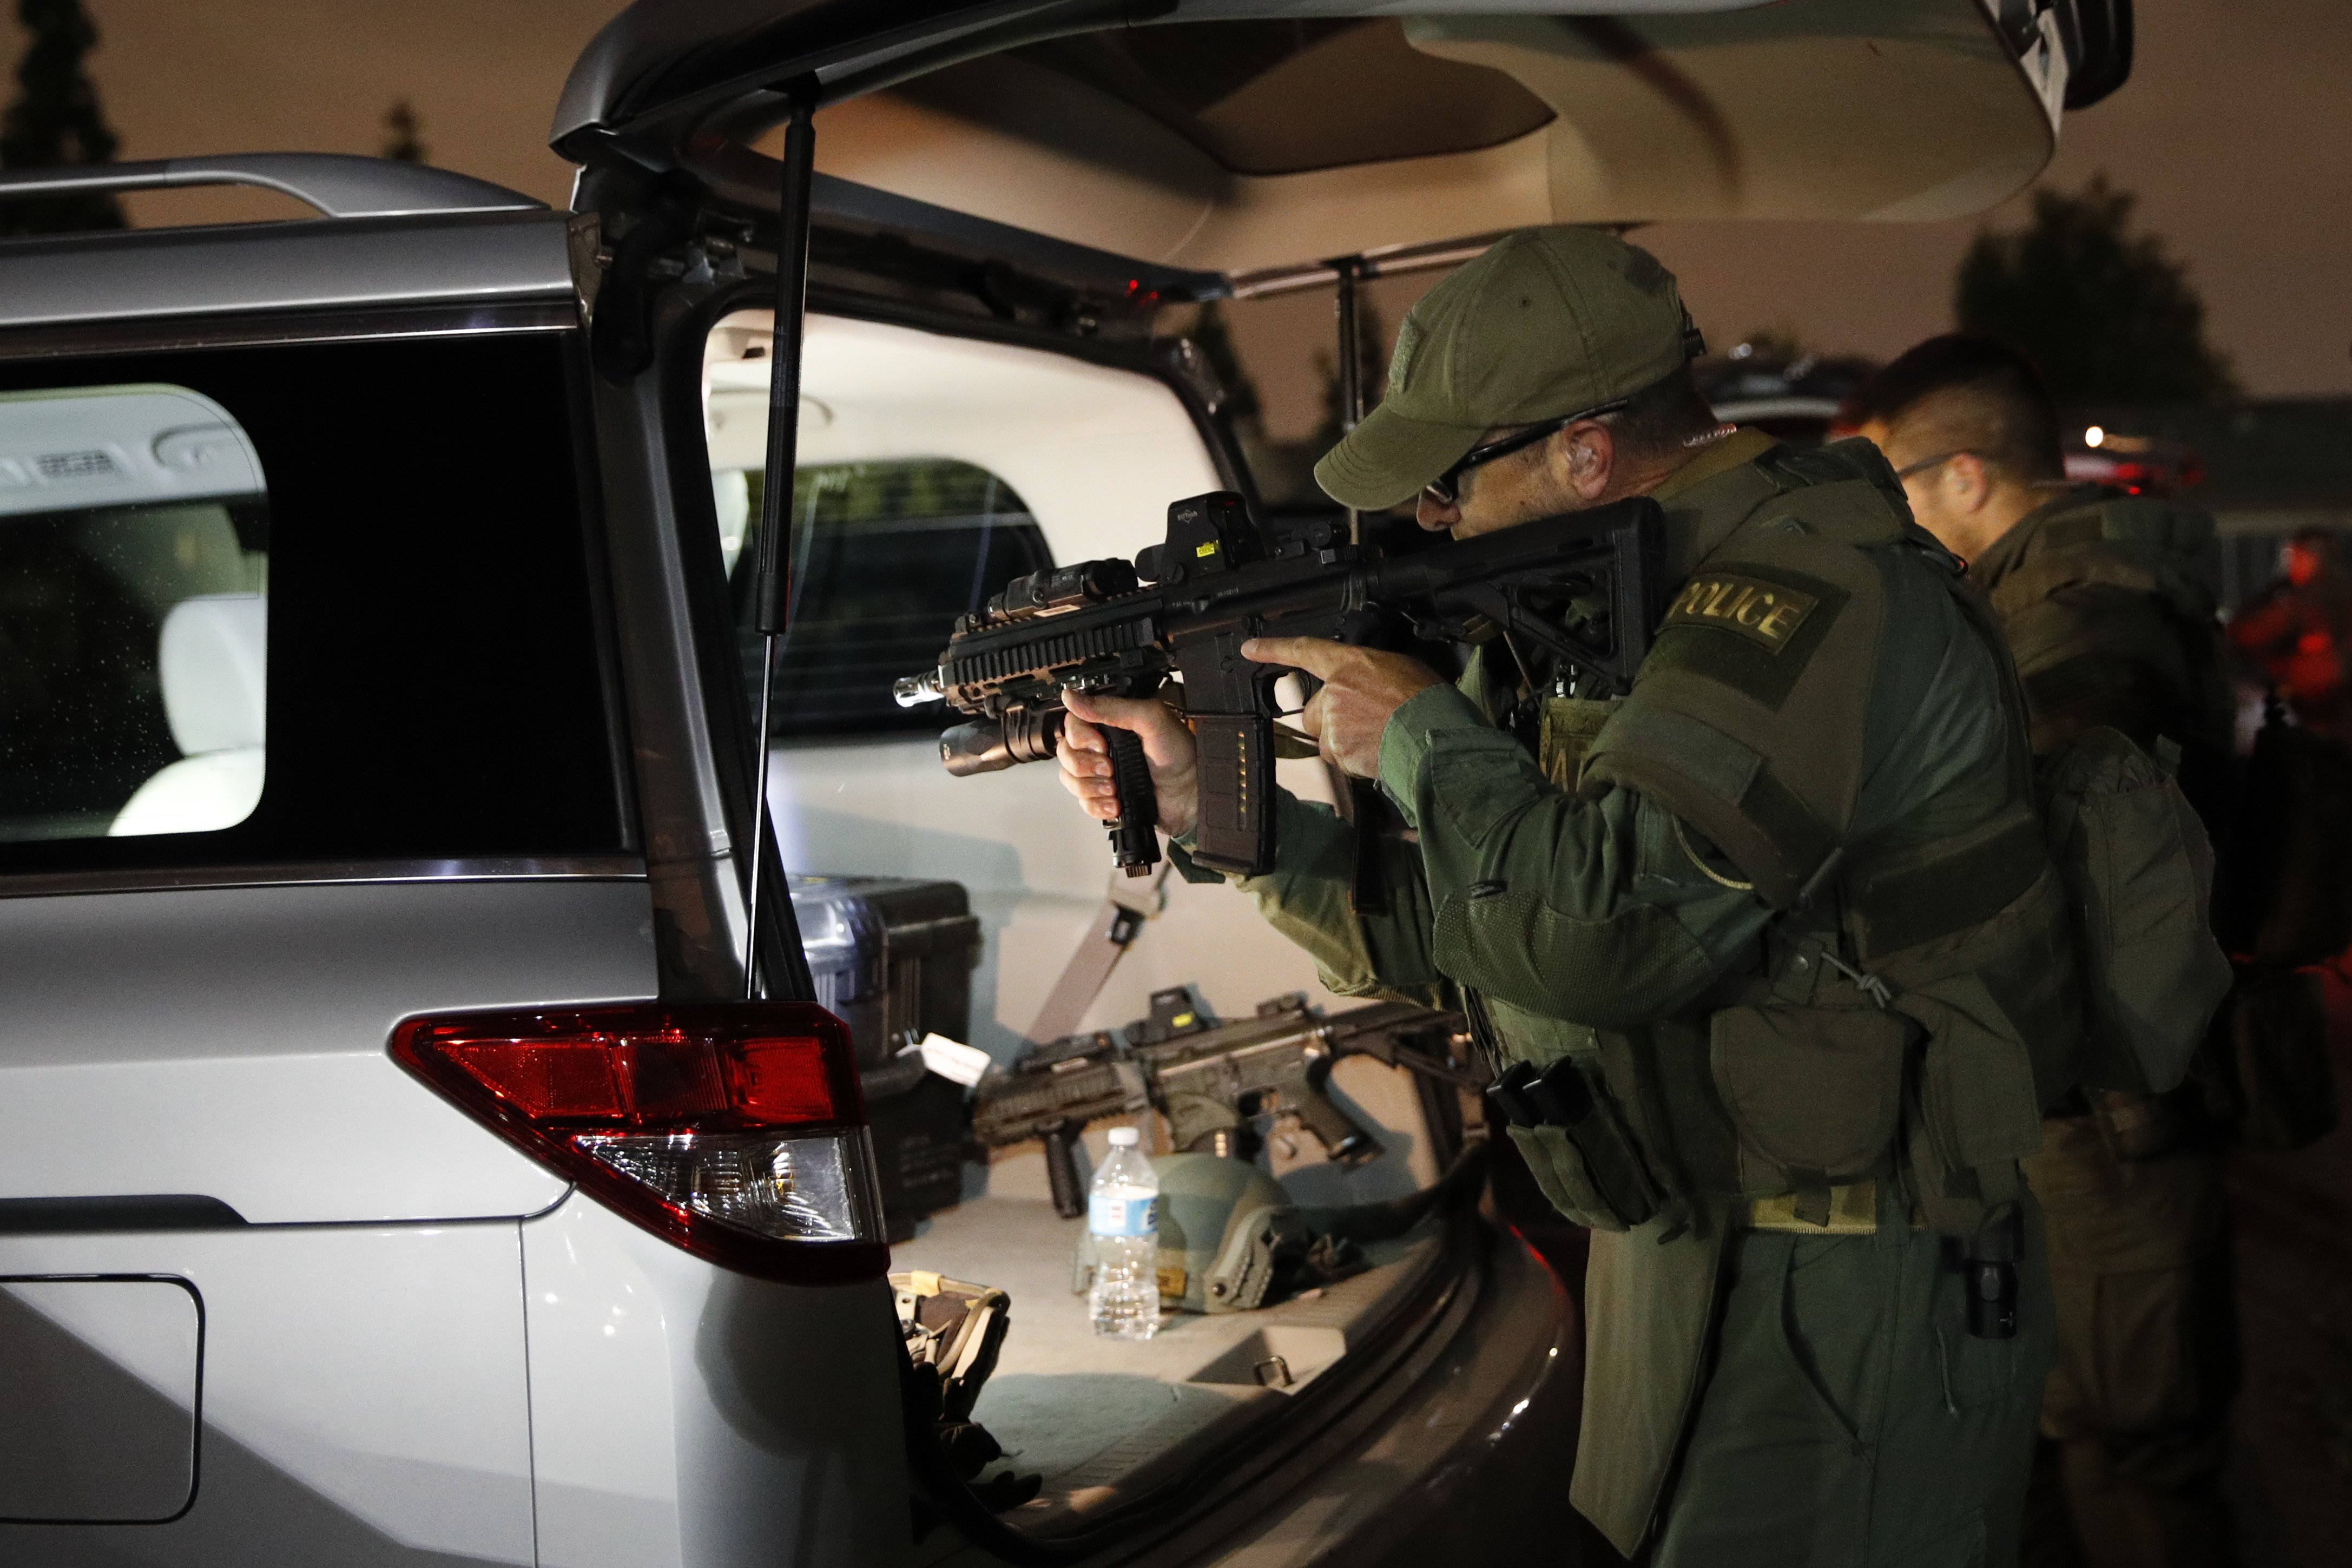 An ATF agent checks his weapon as he gets ready for a raid on May 17, 2017, in Los Angeles. Hundreds of federal and local law enforcement fanned out across Los Angeles, serving arrest and search warrants as part of a three-year investigation into the violent and brutal street gang MS-13.